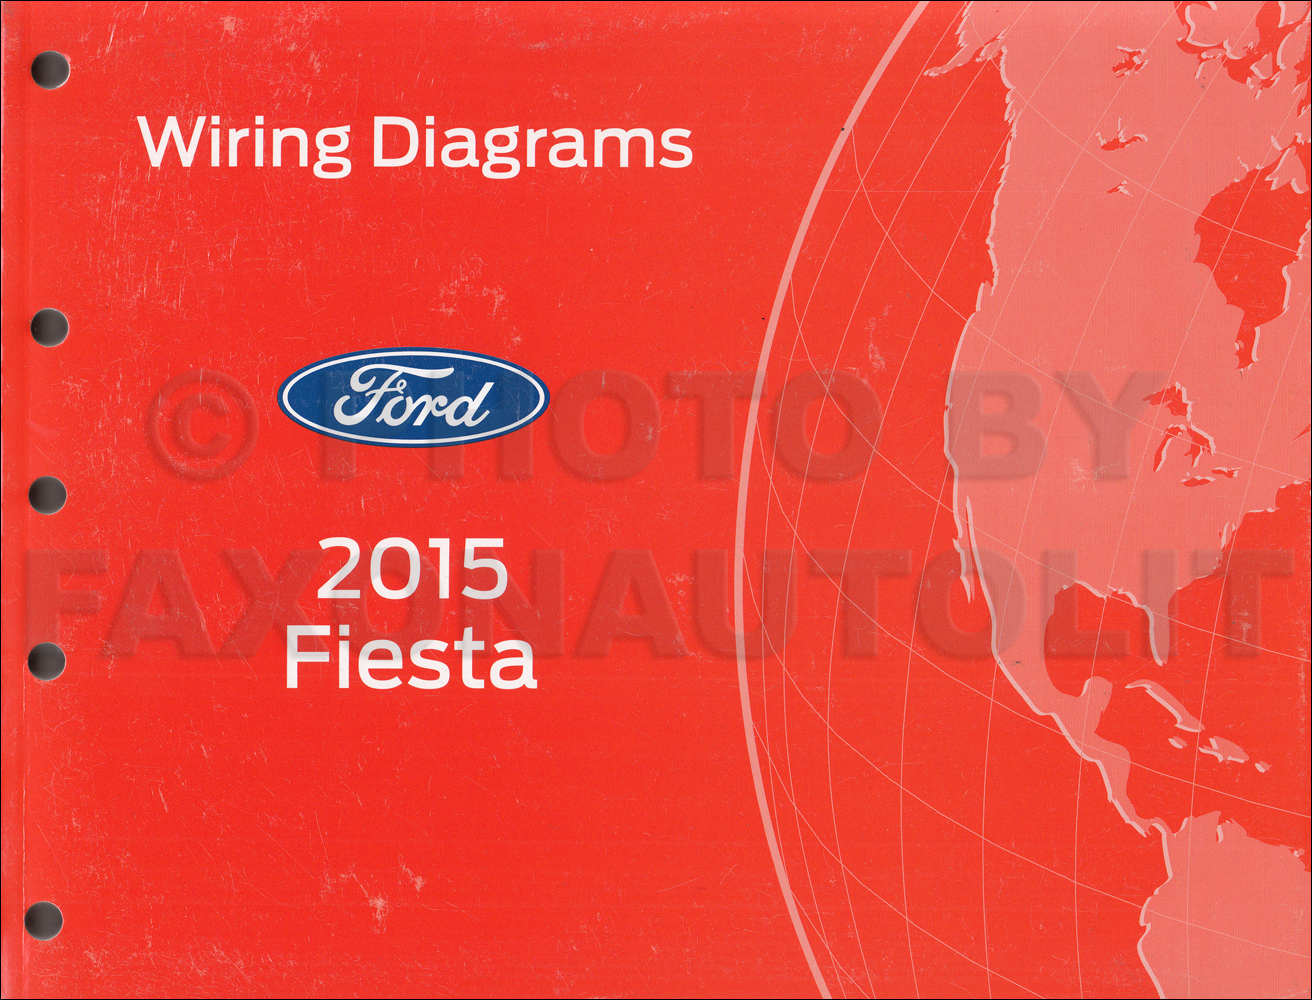 2015FordFiestaOWD 2015 ford fiesta wiring diagram manual original 2015 ford fiesta fuse box diagram at mifinder.co